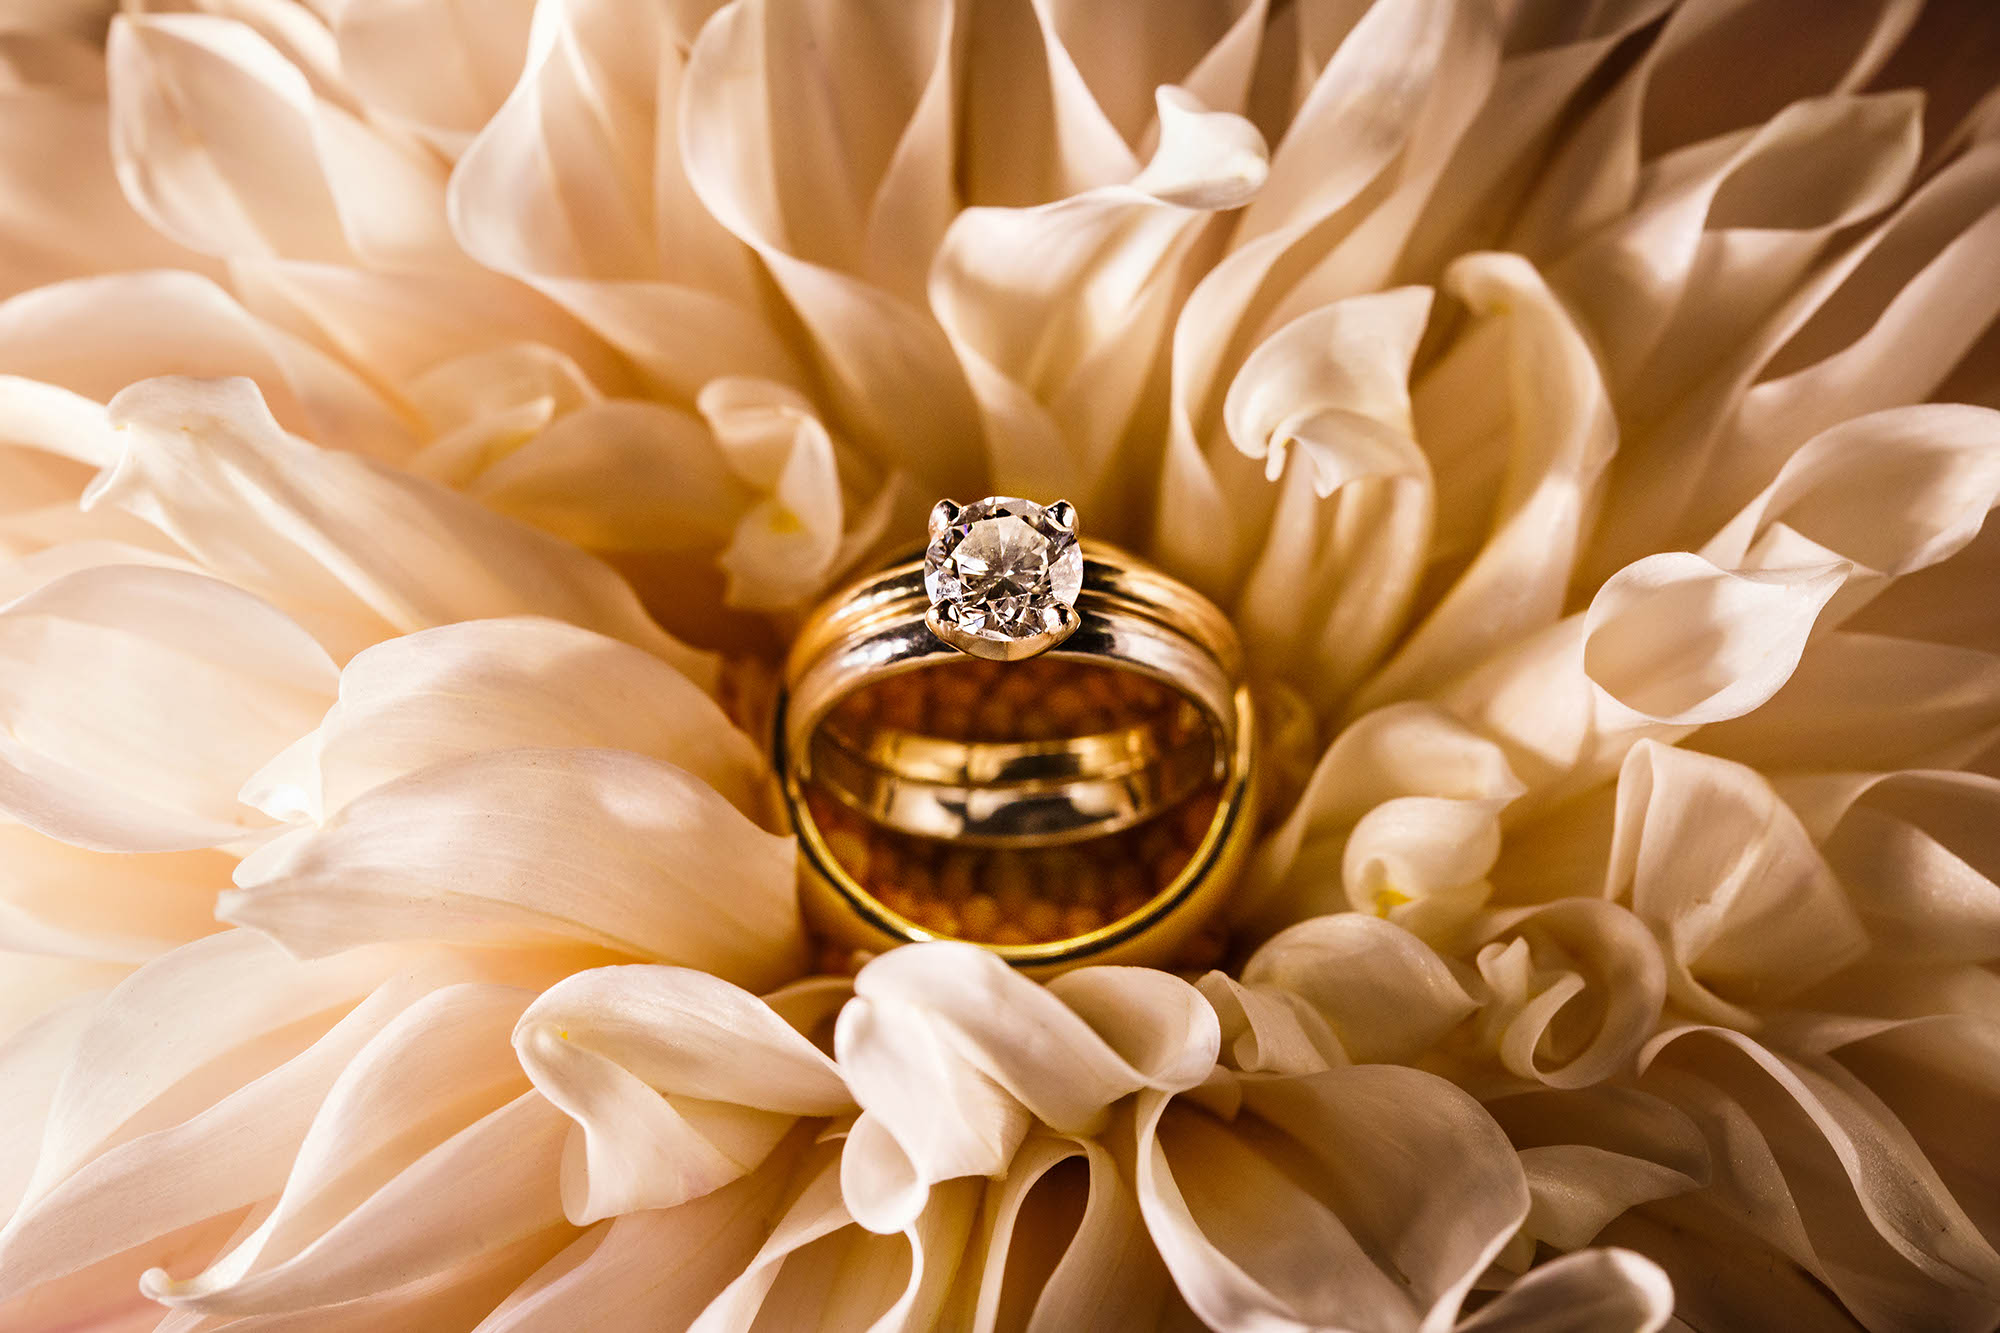 A beautiful close-up image of wedding rings stacked on top of each other inside a cream colored flower on the bride's wedding bouquet taken in Northeast Ohio.